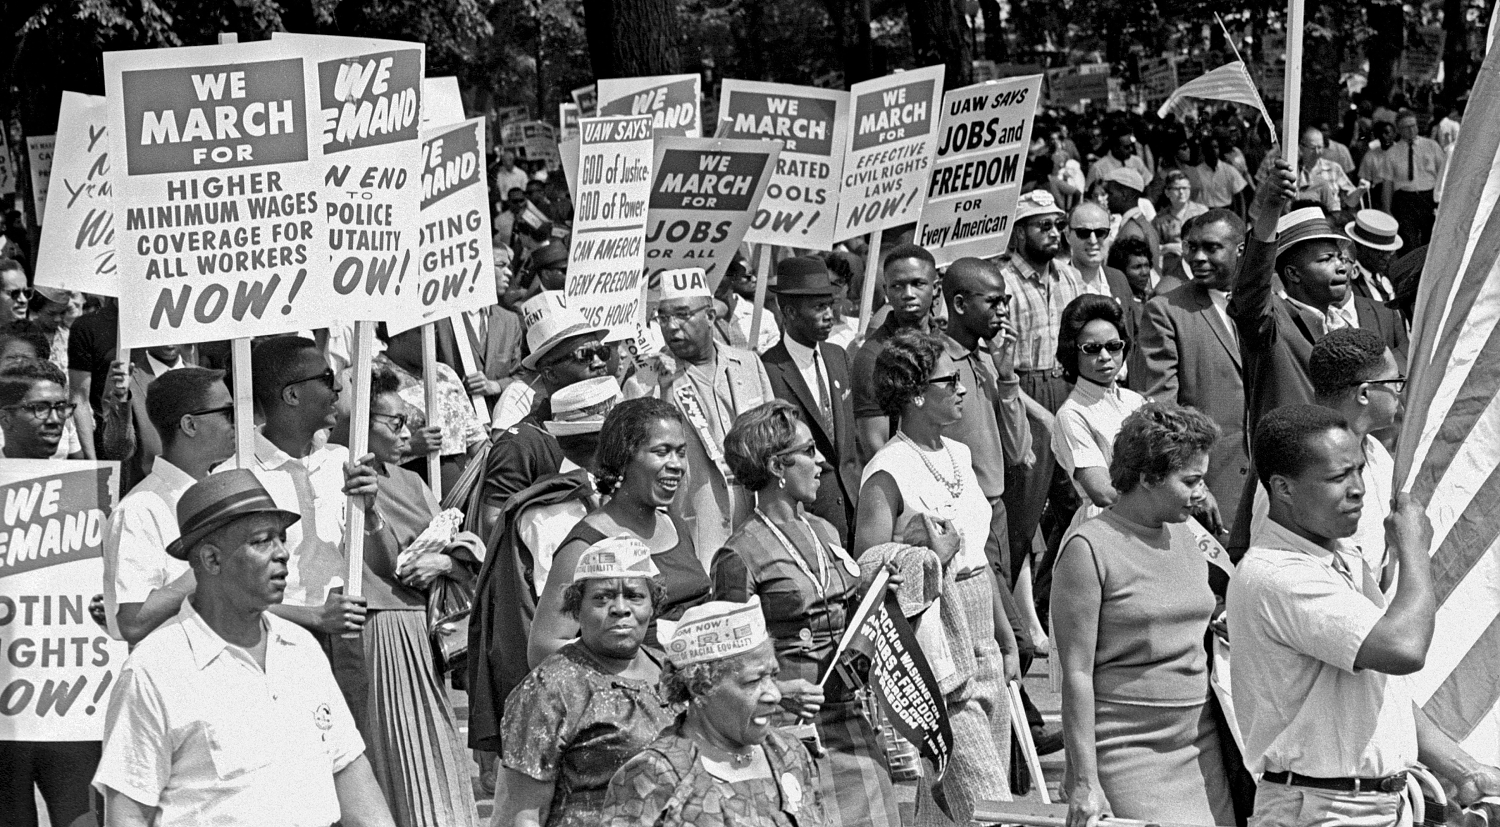 civil rights history project national museum of african american history and culture https nmaahc si edu explore initiatives oralhistory civil rights history project